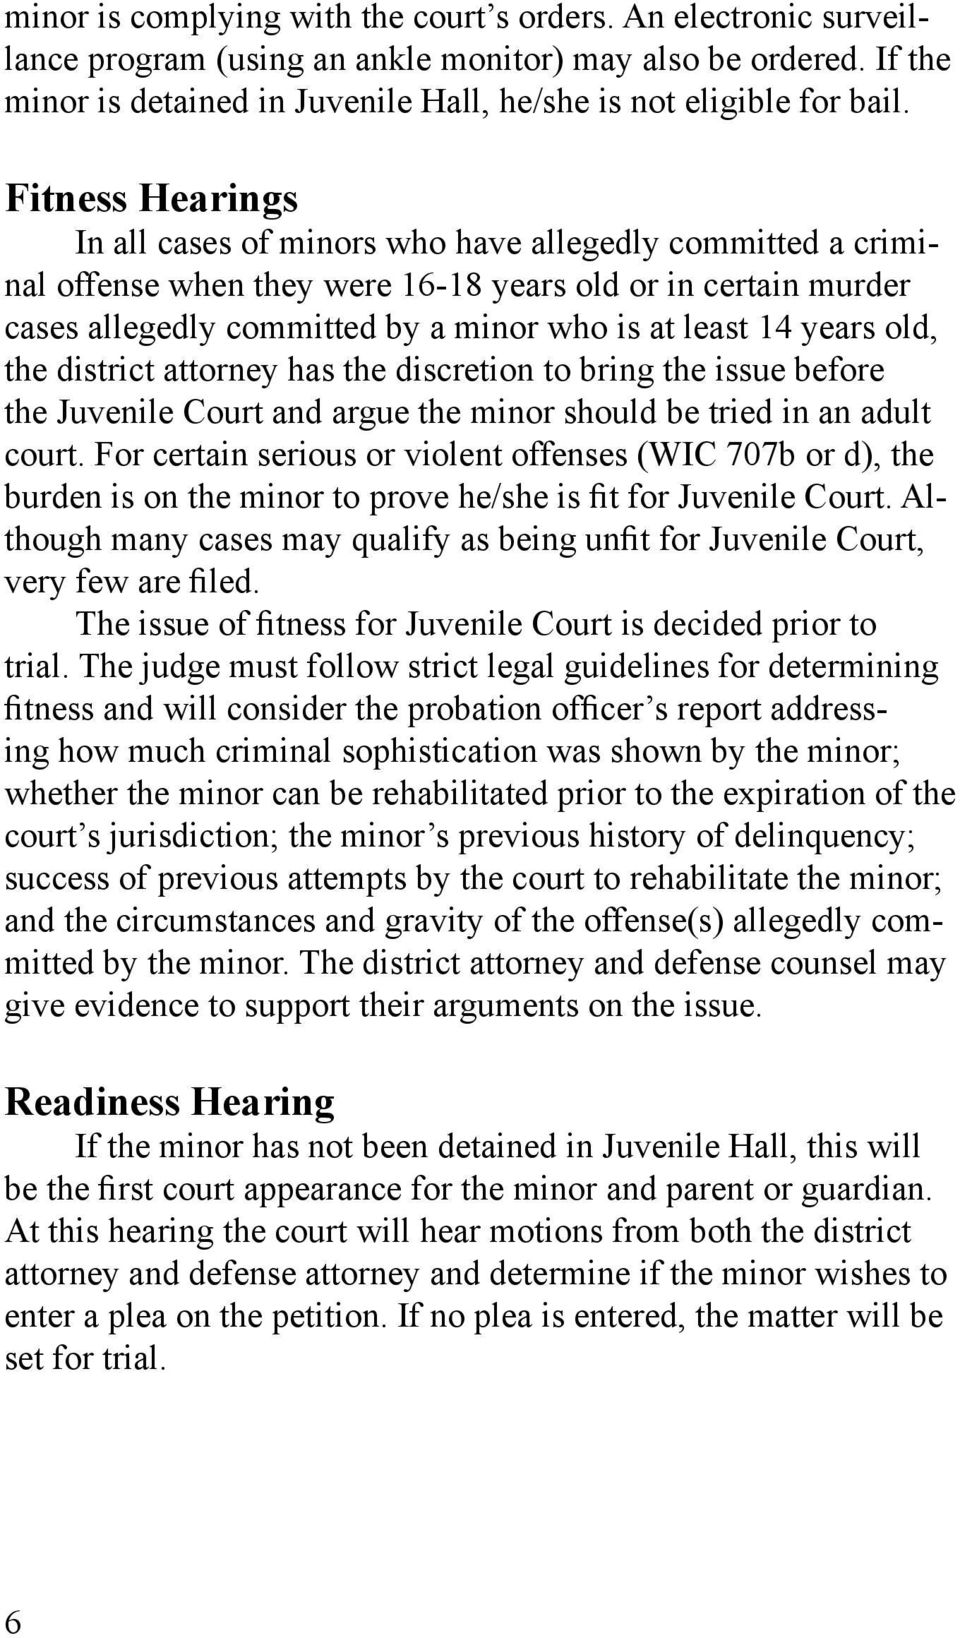 years old, the district attorney has the discretion to bring the issue before the Juvenile Court and argue the minor should be tried in an adult court.